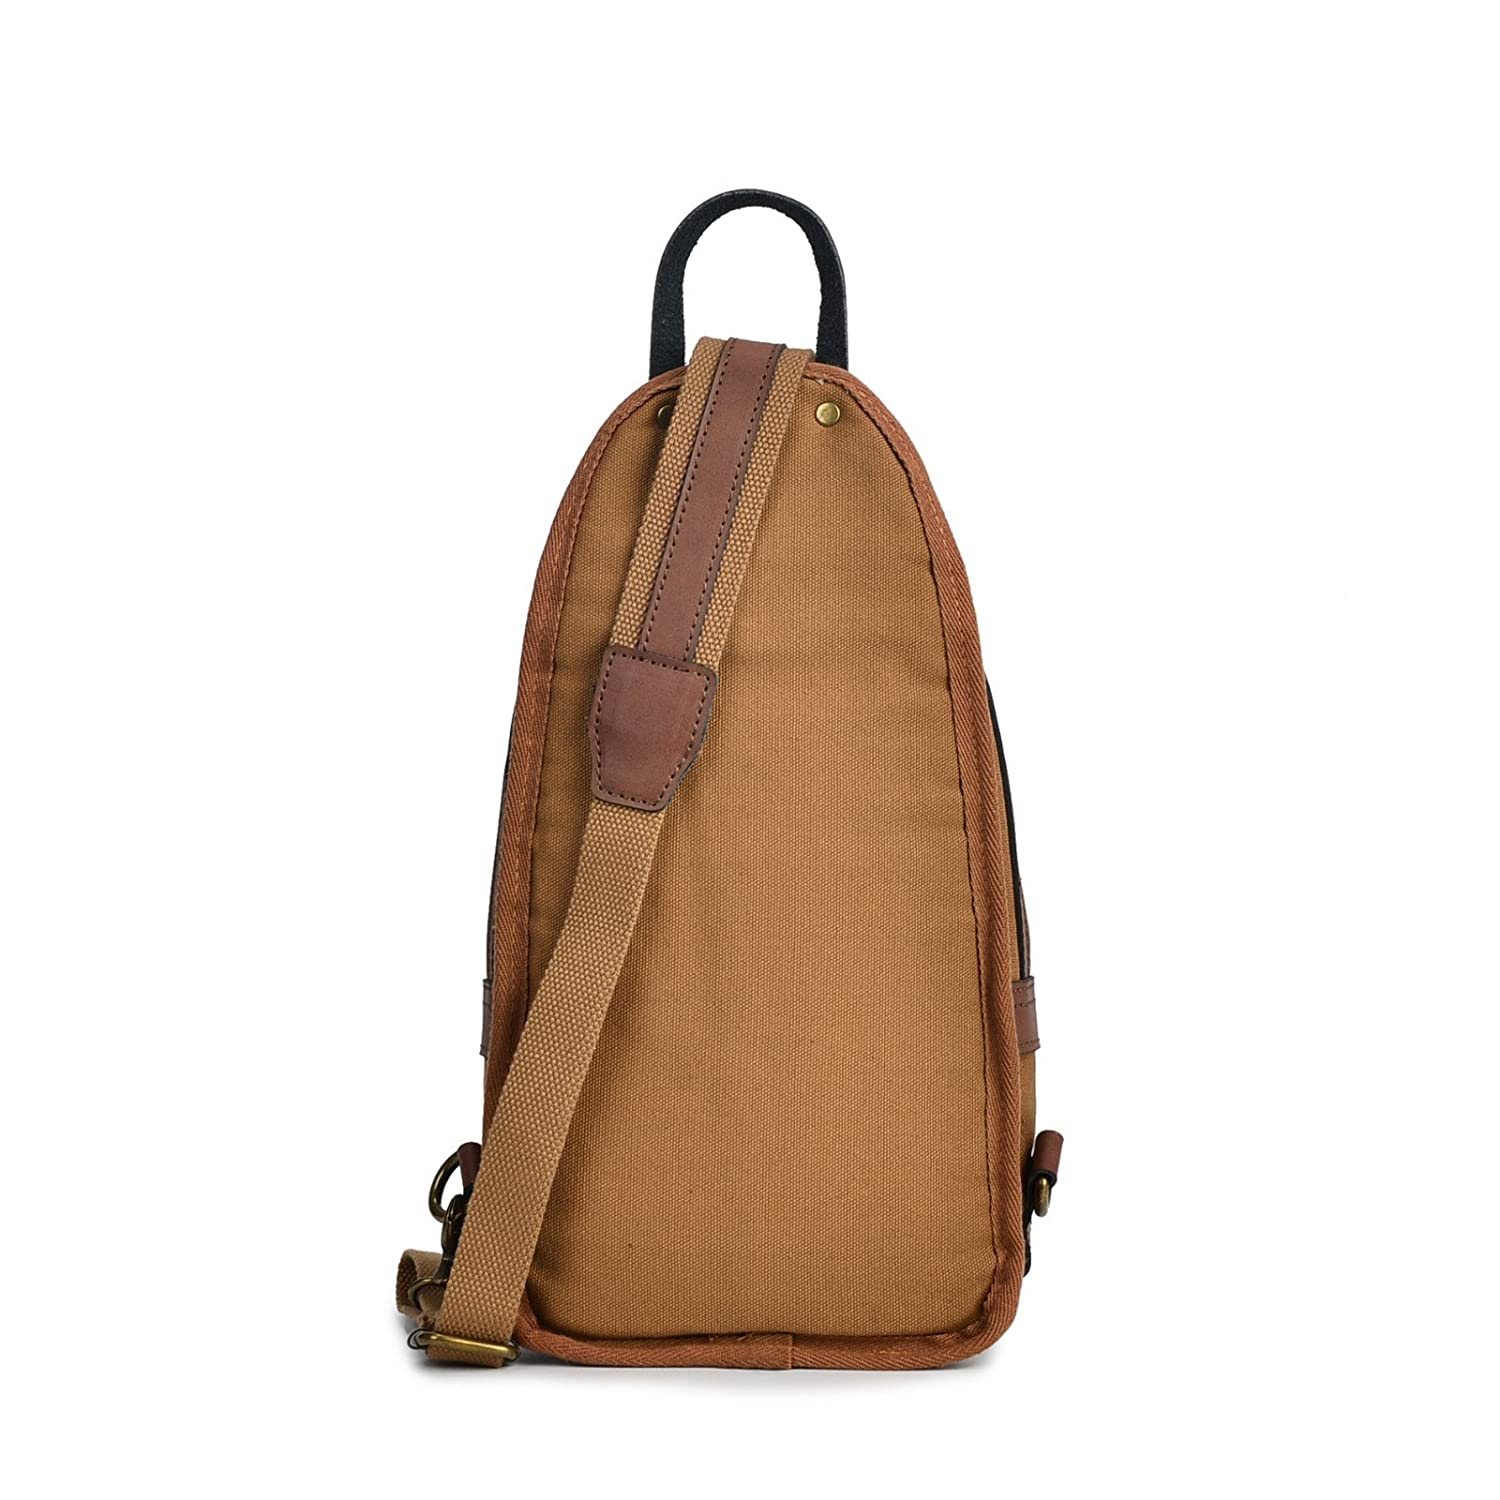 Brown KEROUSIDEN Mens Shoulder Bag Casual Sports Chest Bag Canvas Fiber Retro Leather Messenger Bag 20cm10cm35cm